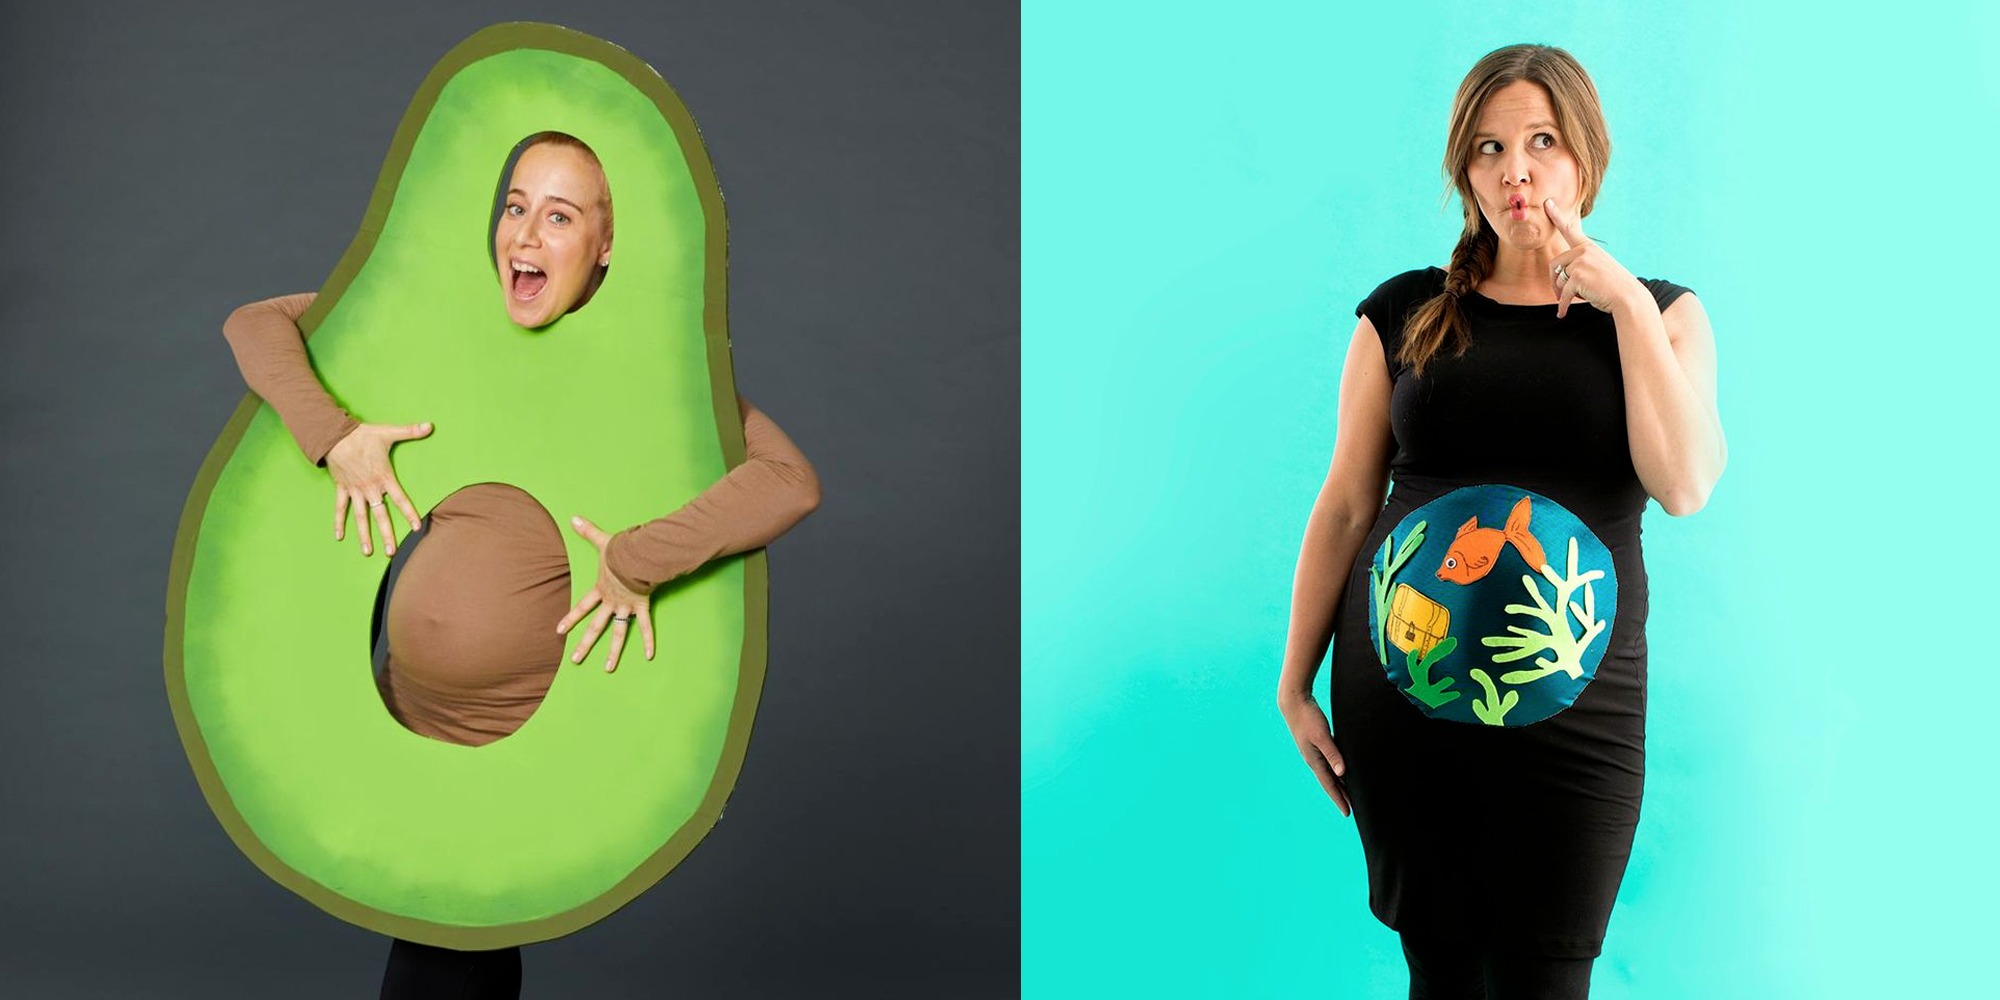 35 Best Pregnant Halloween Costumes 2020 Diy Maternity Costume Ideas For Women